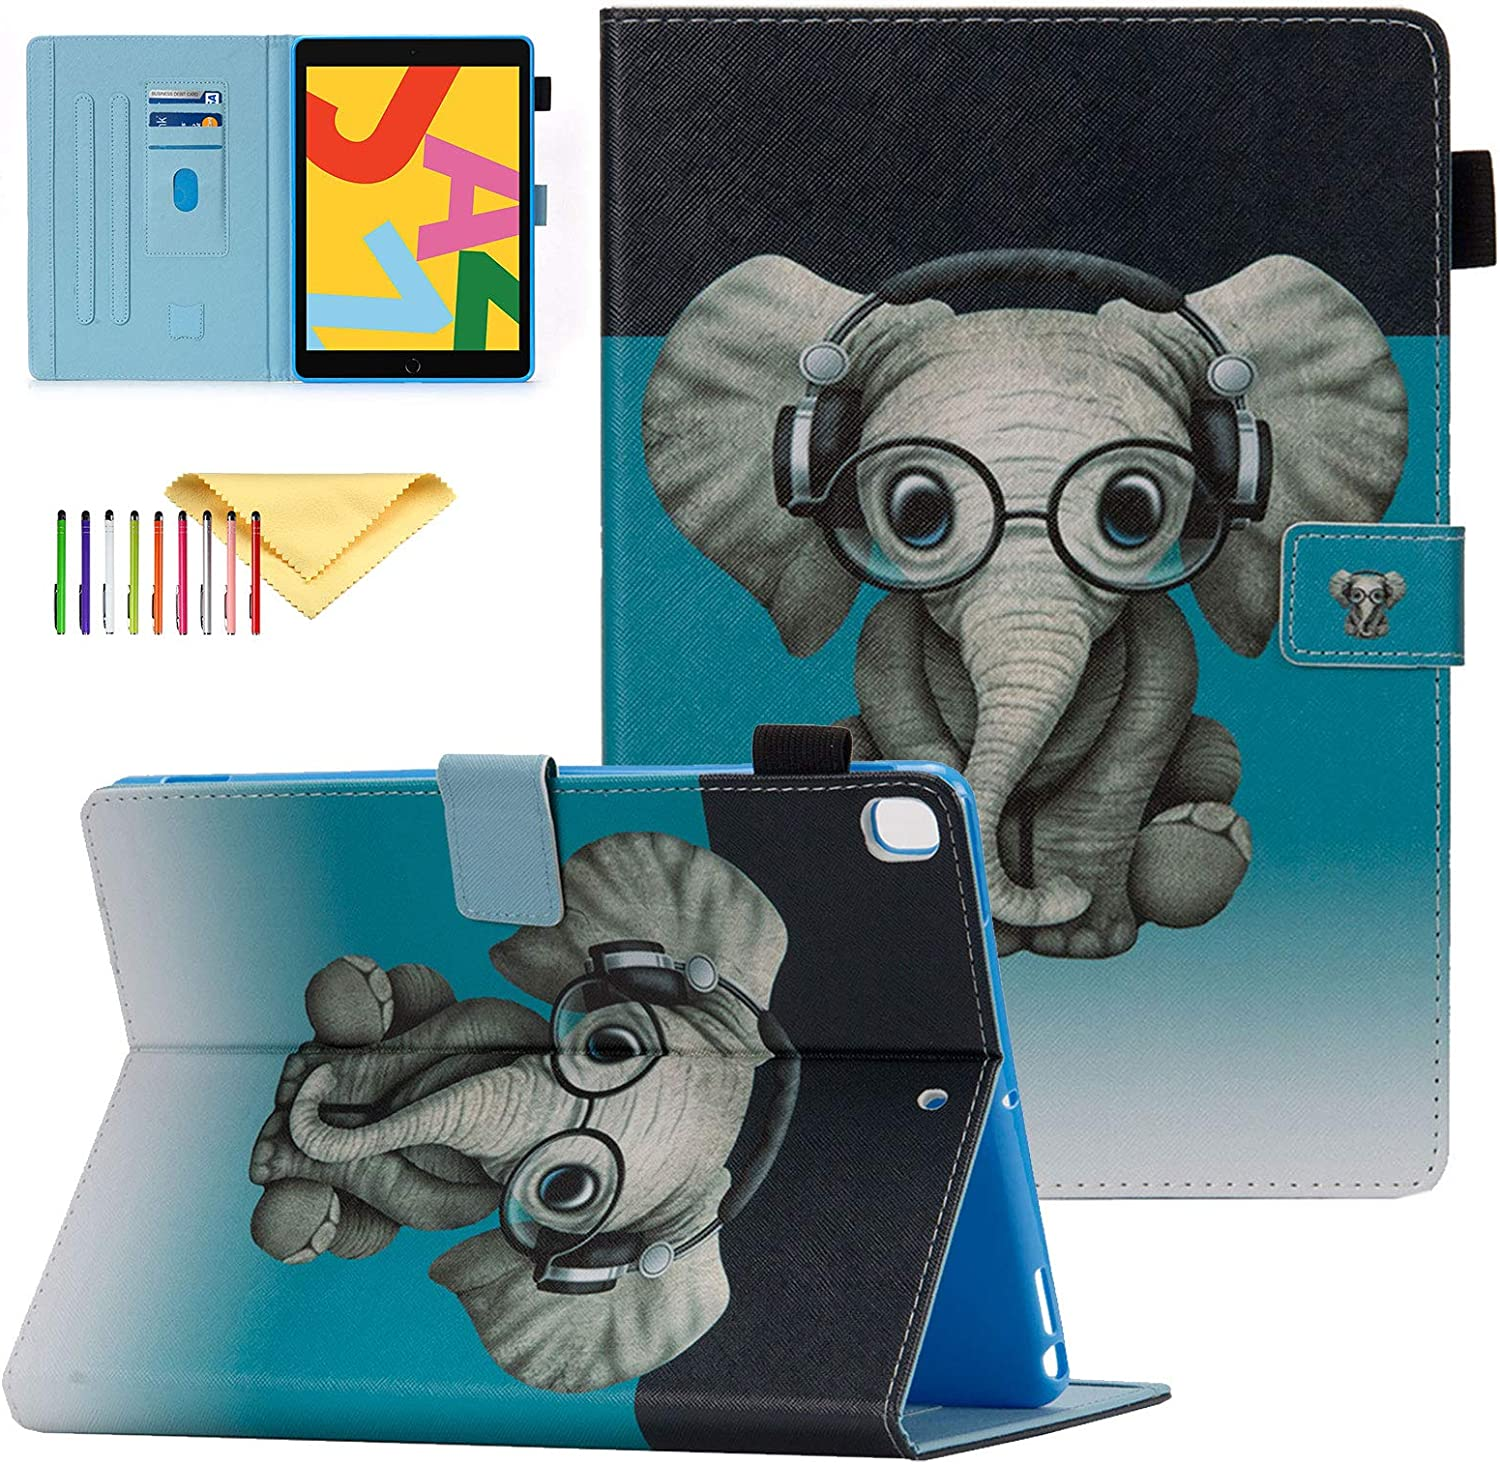 """Case for New iPad 10.2 2020/2019 - iPad 8th/7th Generation Case, Cookk Shock Proof Protective Stand Cover with Auto Sleep/Wake Feature Case Kids for iPad 10.2"""" 2020/2019 Latest Model, Music Elephant"""